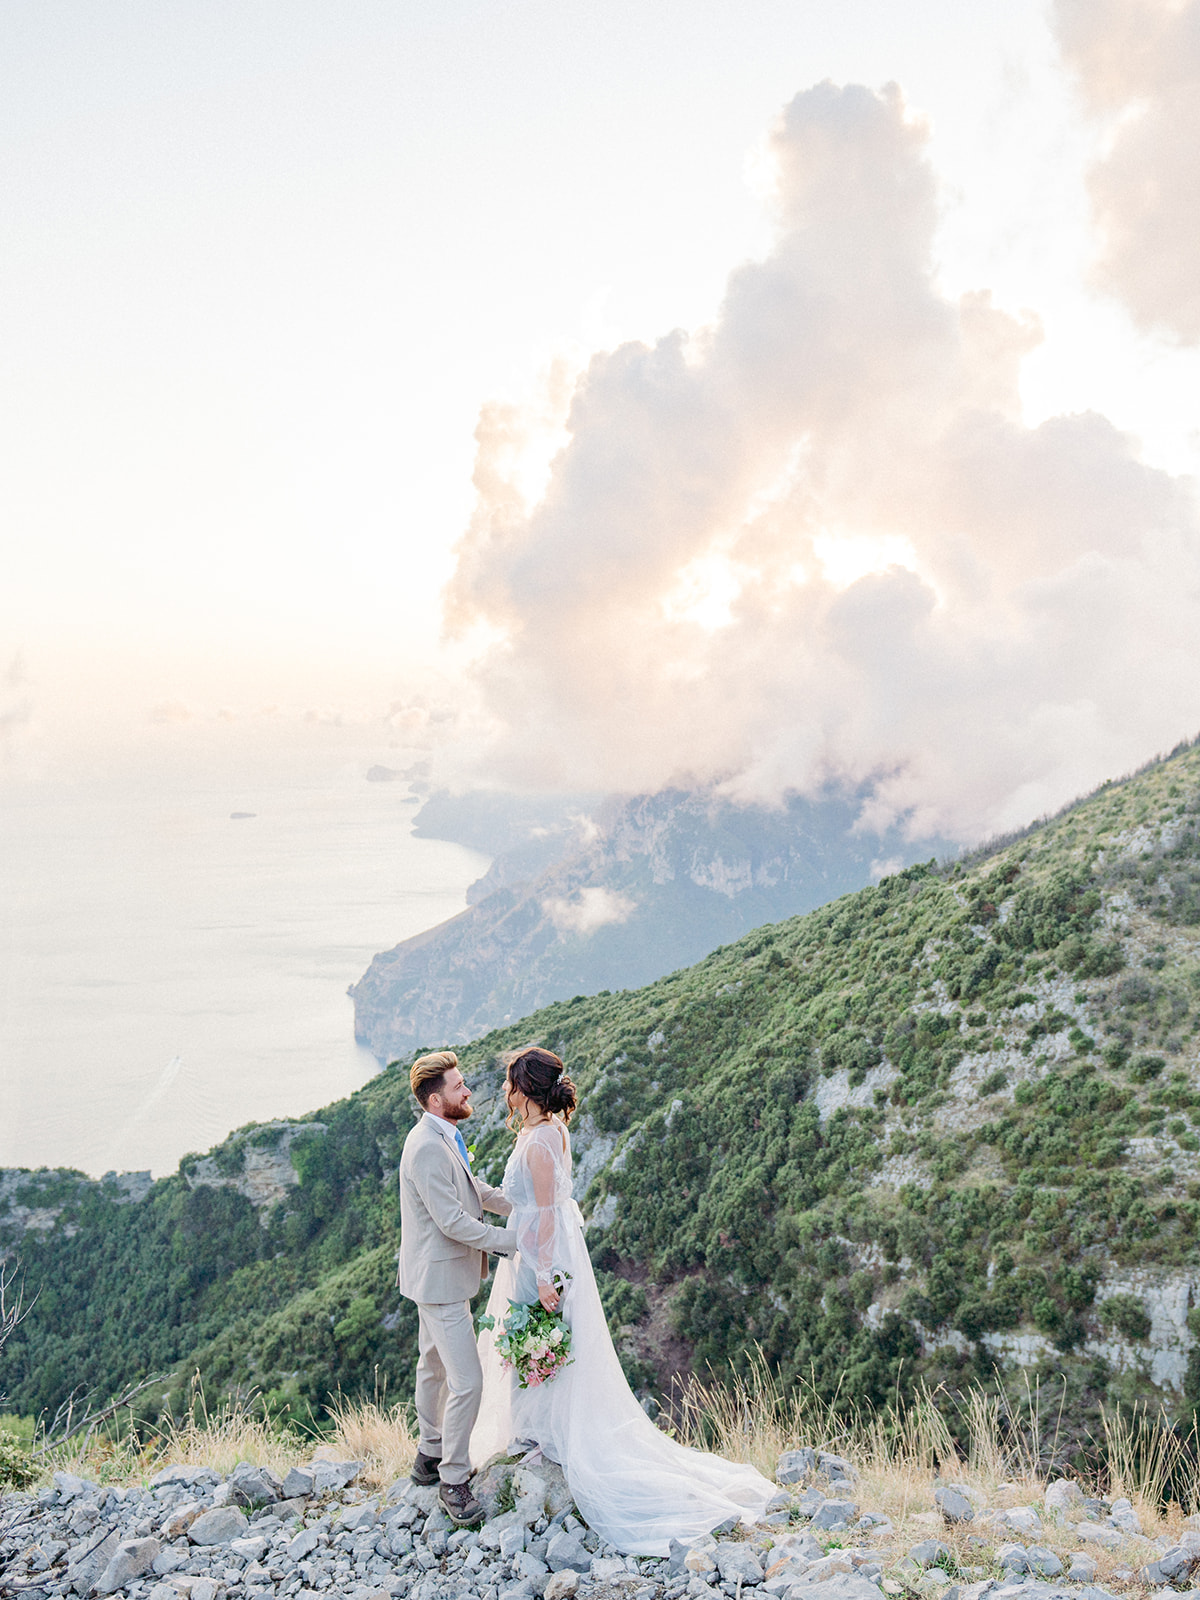 The Path of the Gods elopement